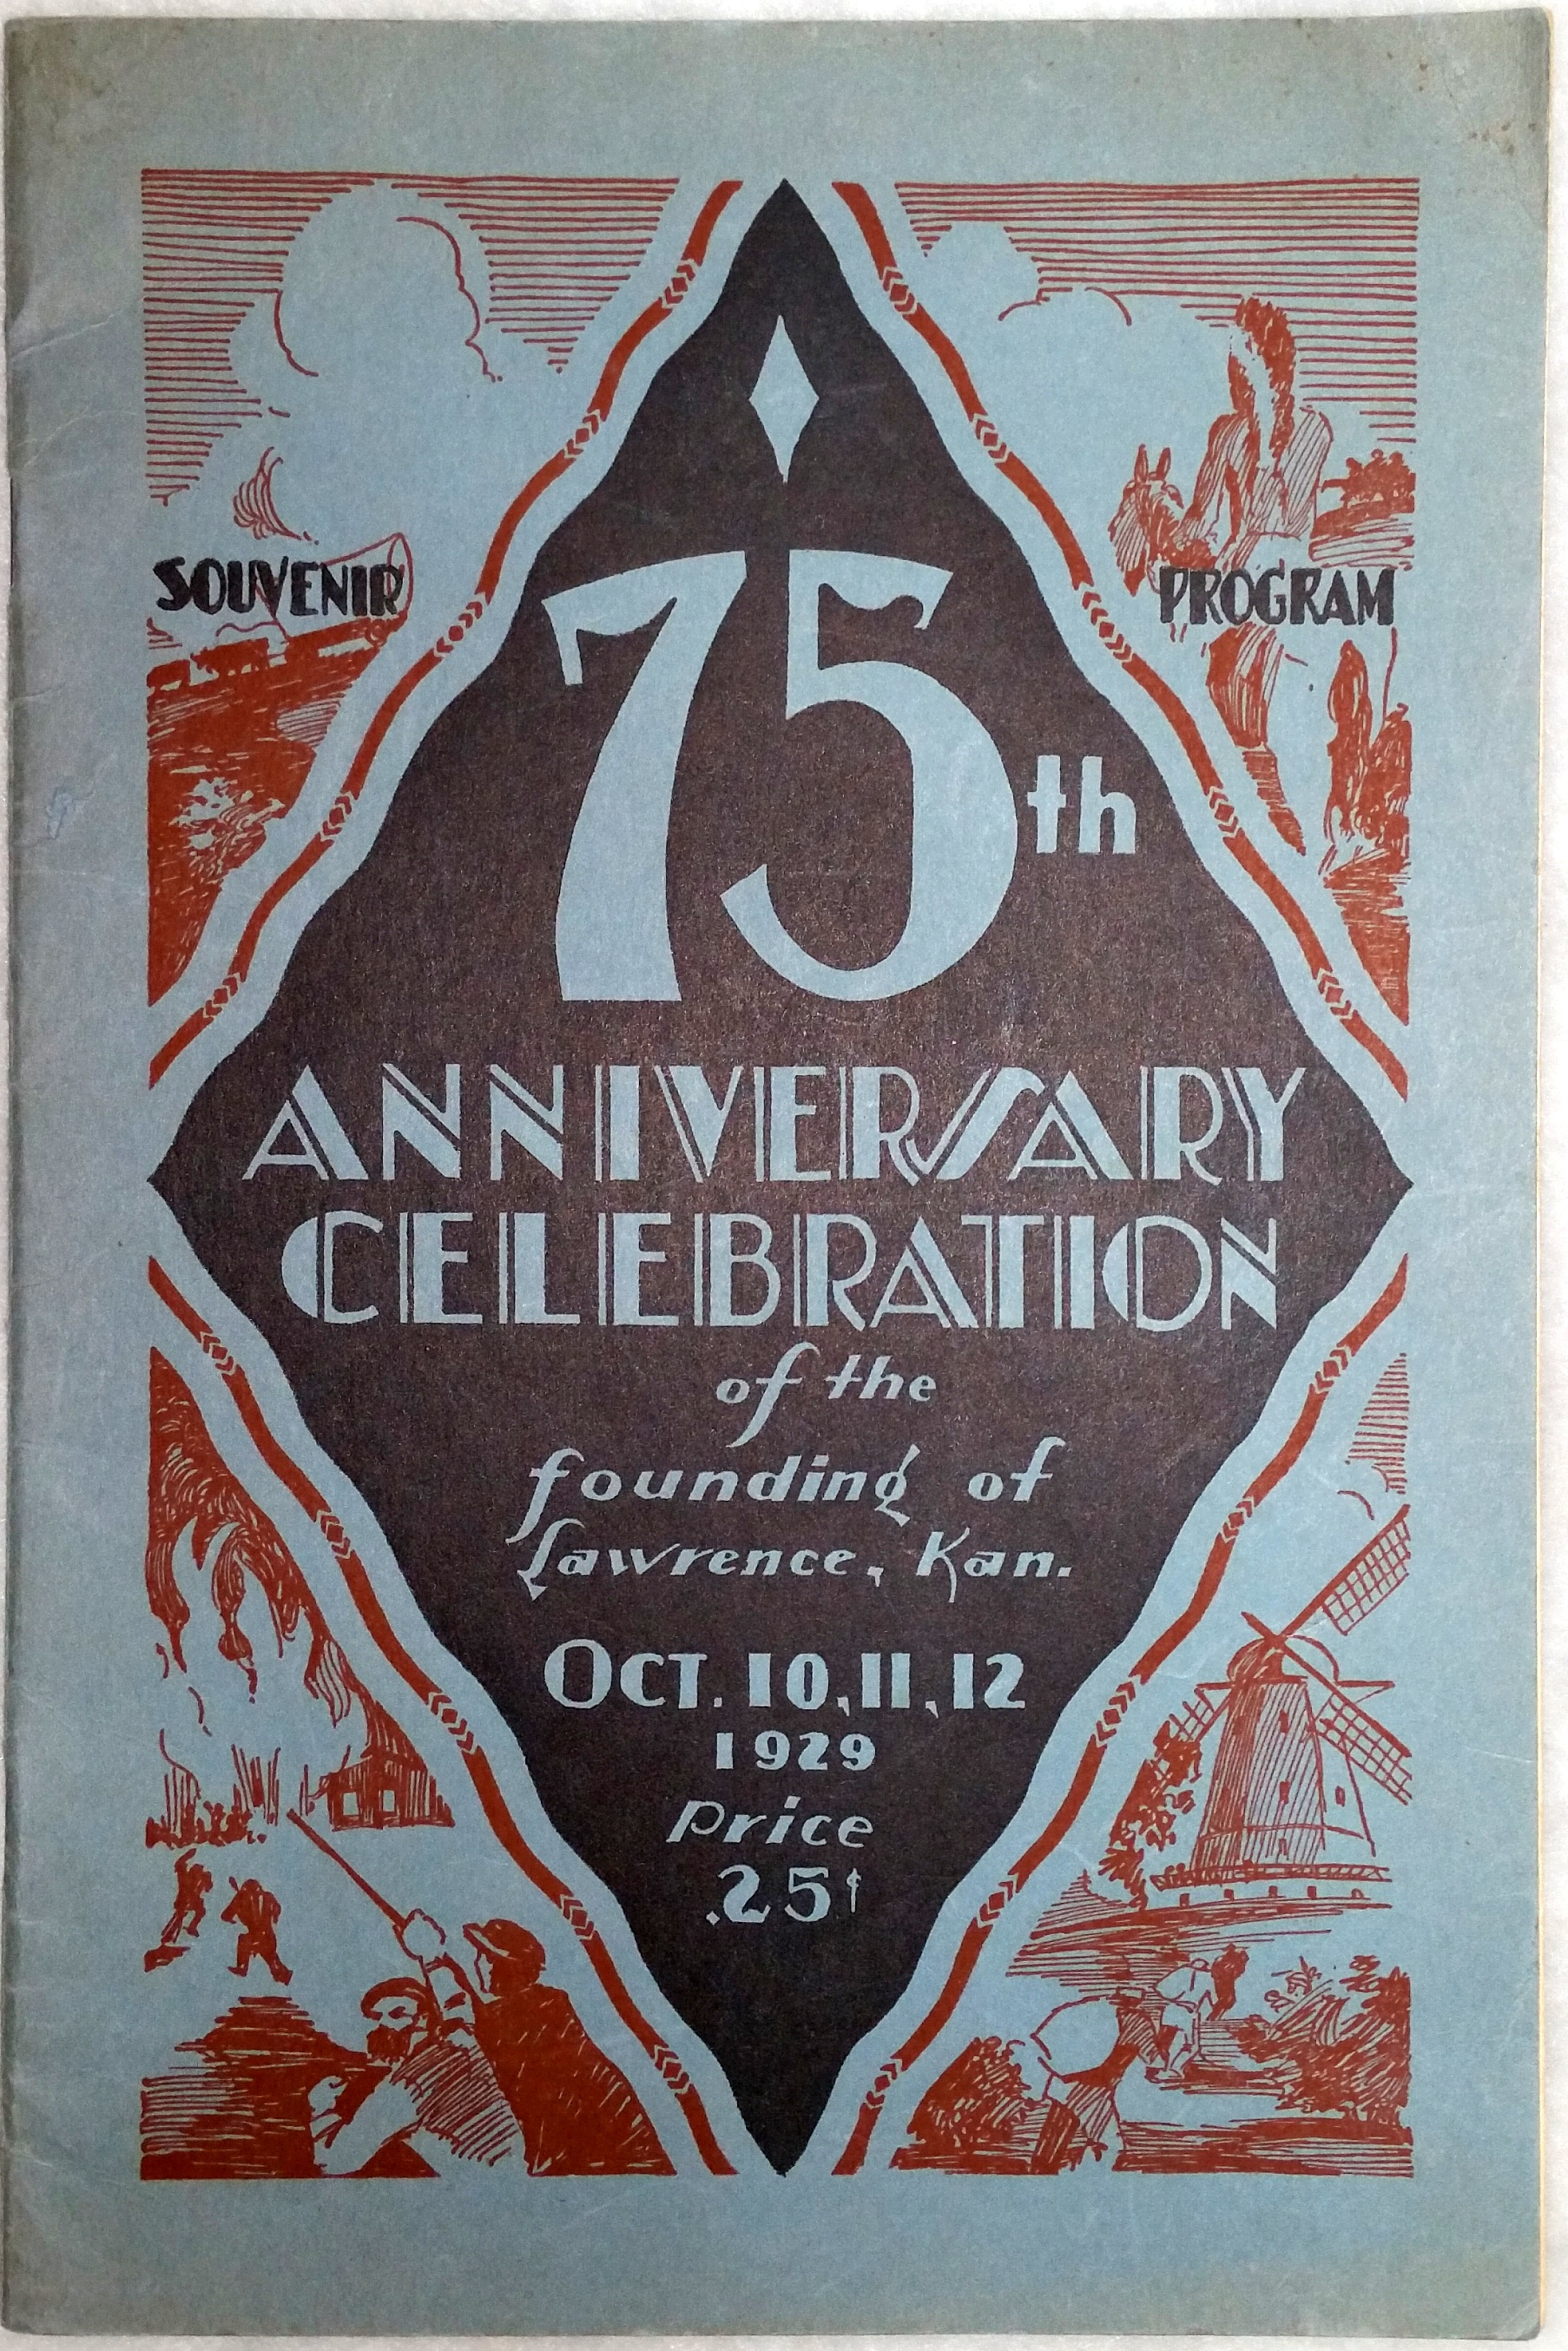 Image for Official Souvenir Program of the Seventy-Fifth Anniversary of the Founding of Lawrence, Kansas, October 10, 11, 12, 1929